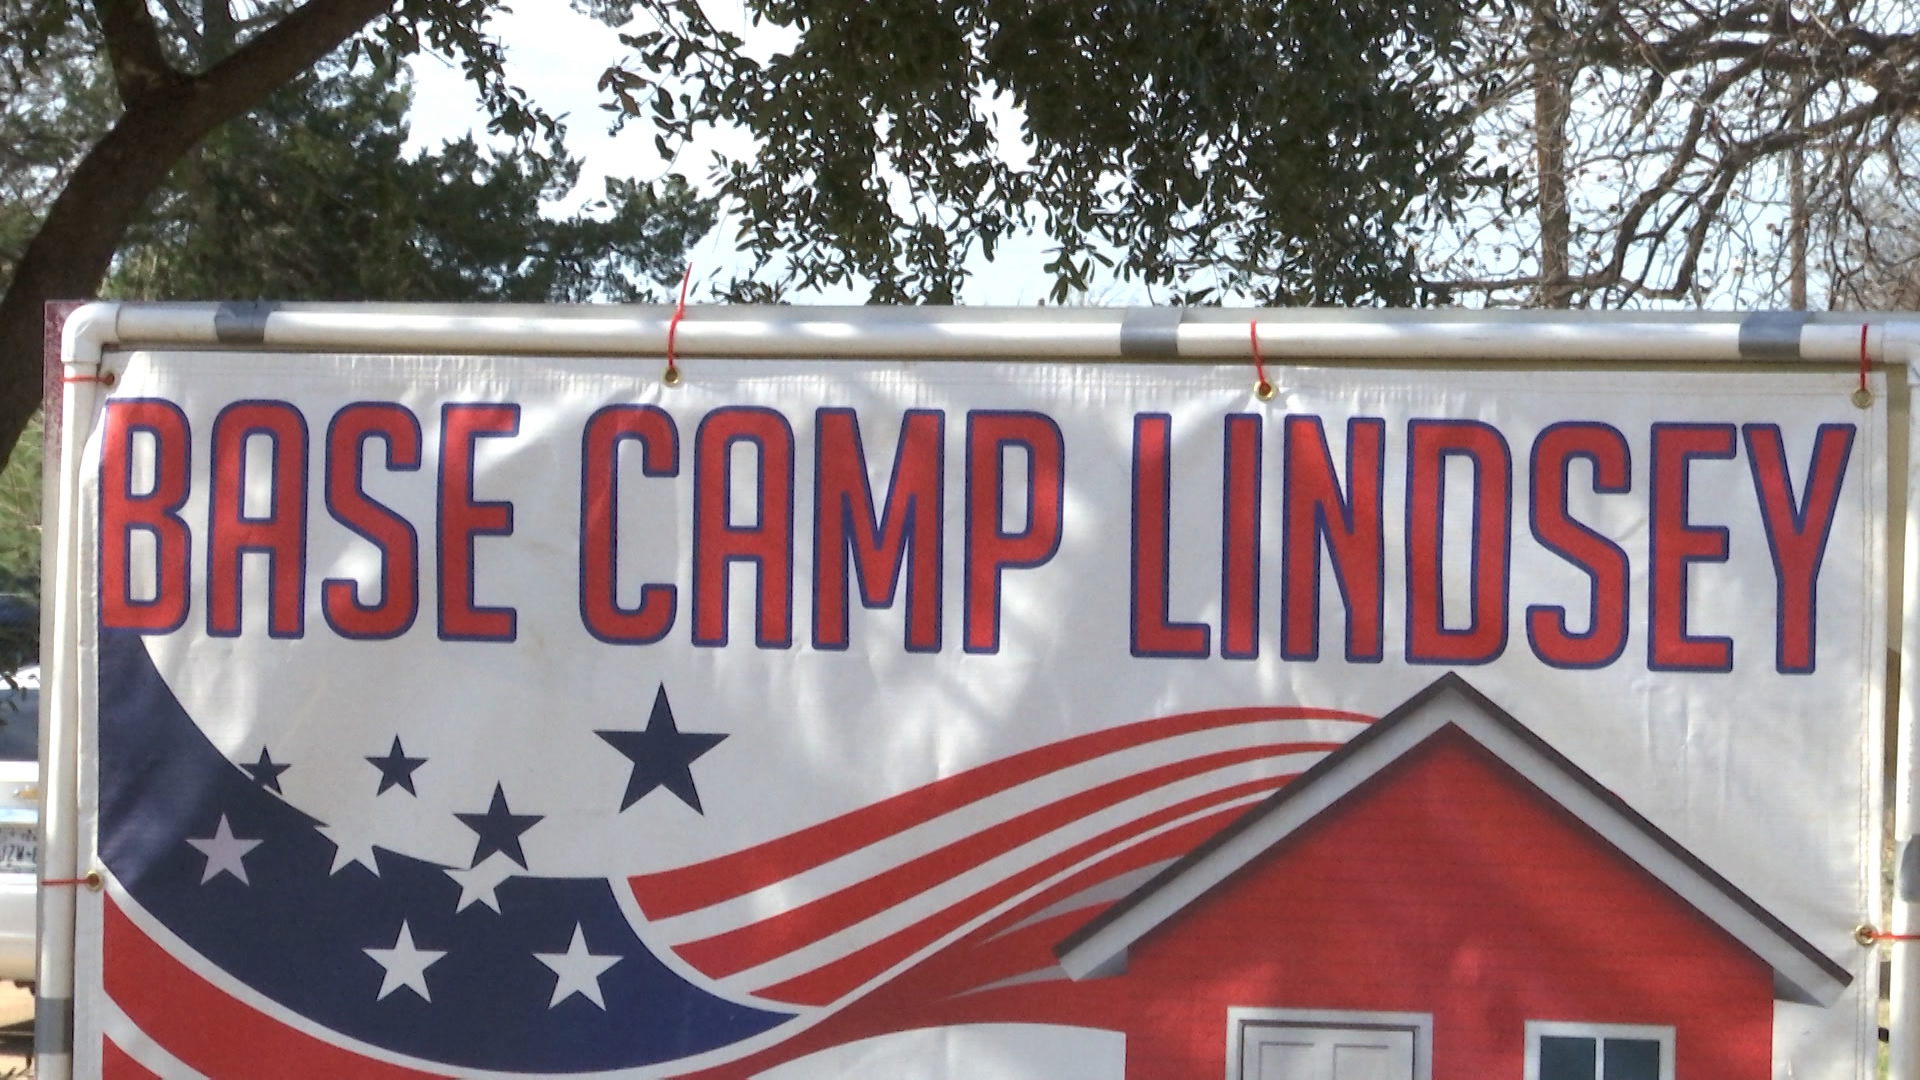 Base Camp Lindsey officials continue to work tirelessly in supporting homeless veterans in our community this time with a Summer stand down.